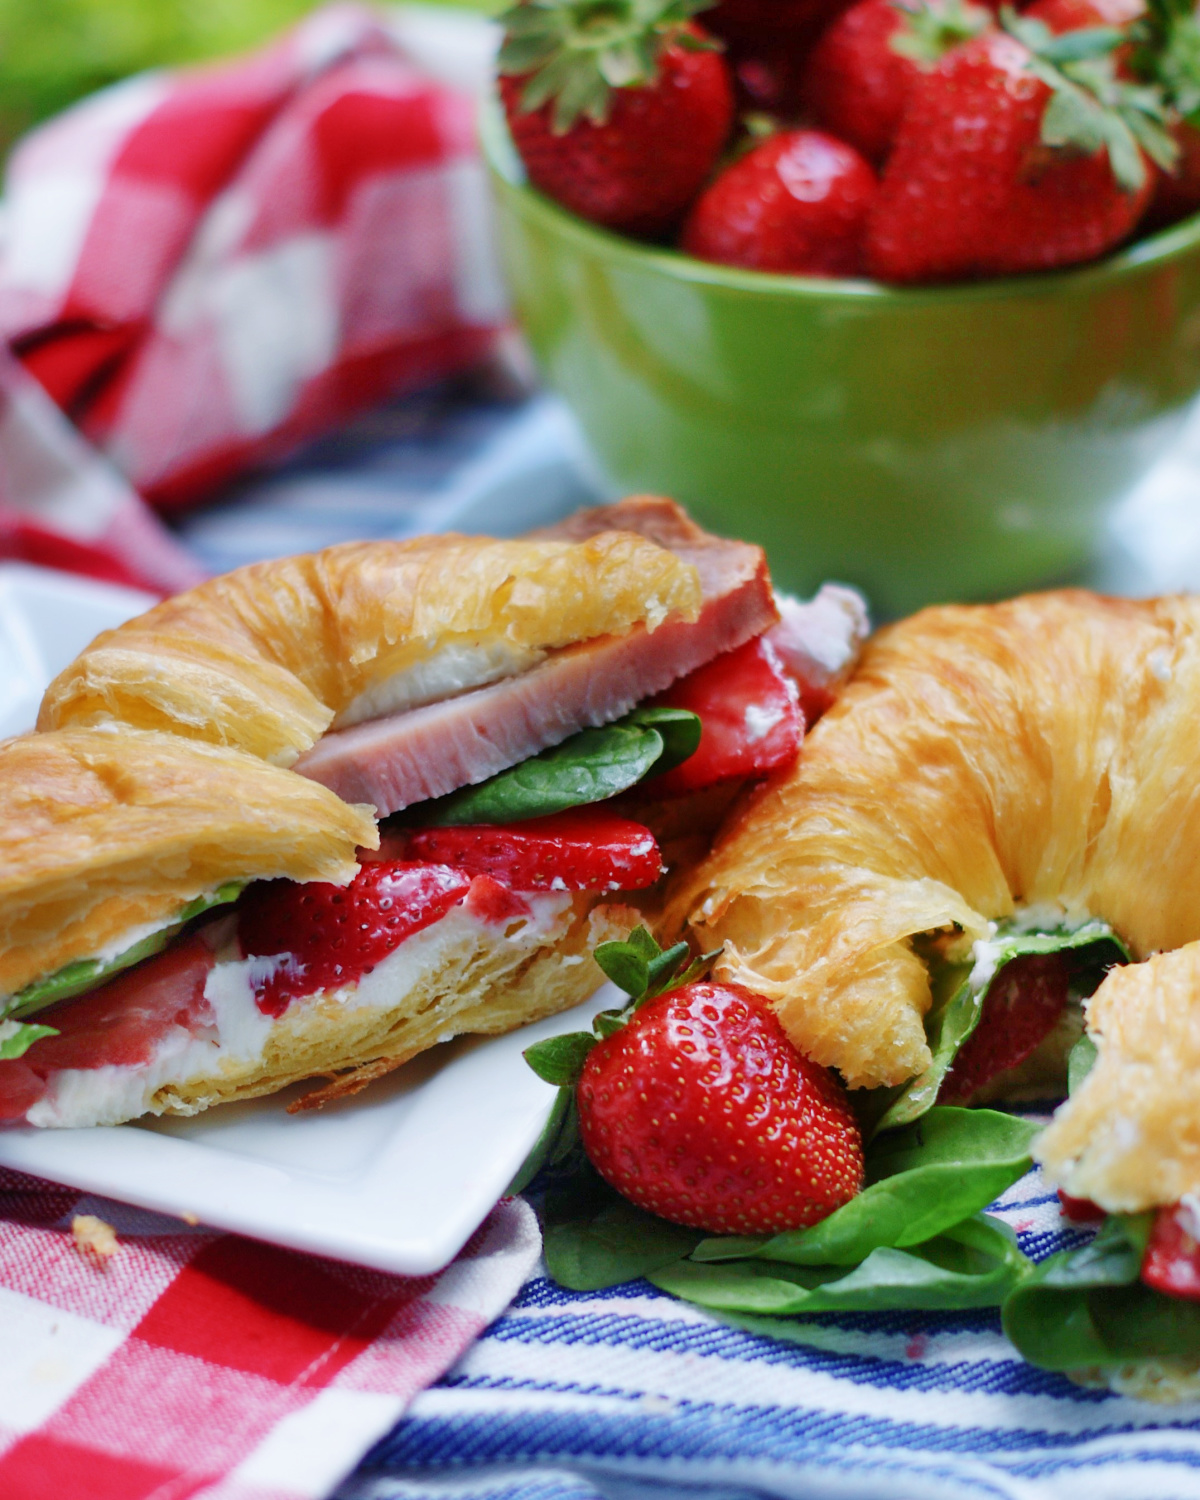 Strawberry Cream Cheese Sandwiches with ham or turkey on croissants for parties and showers.